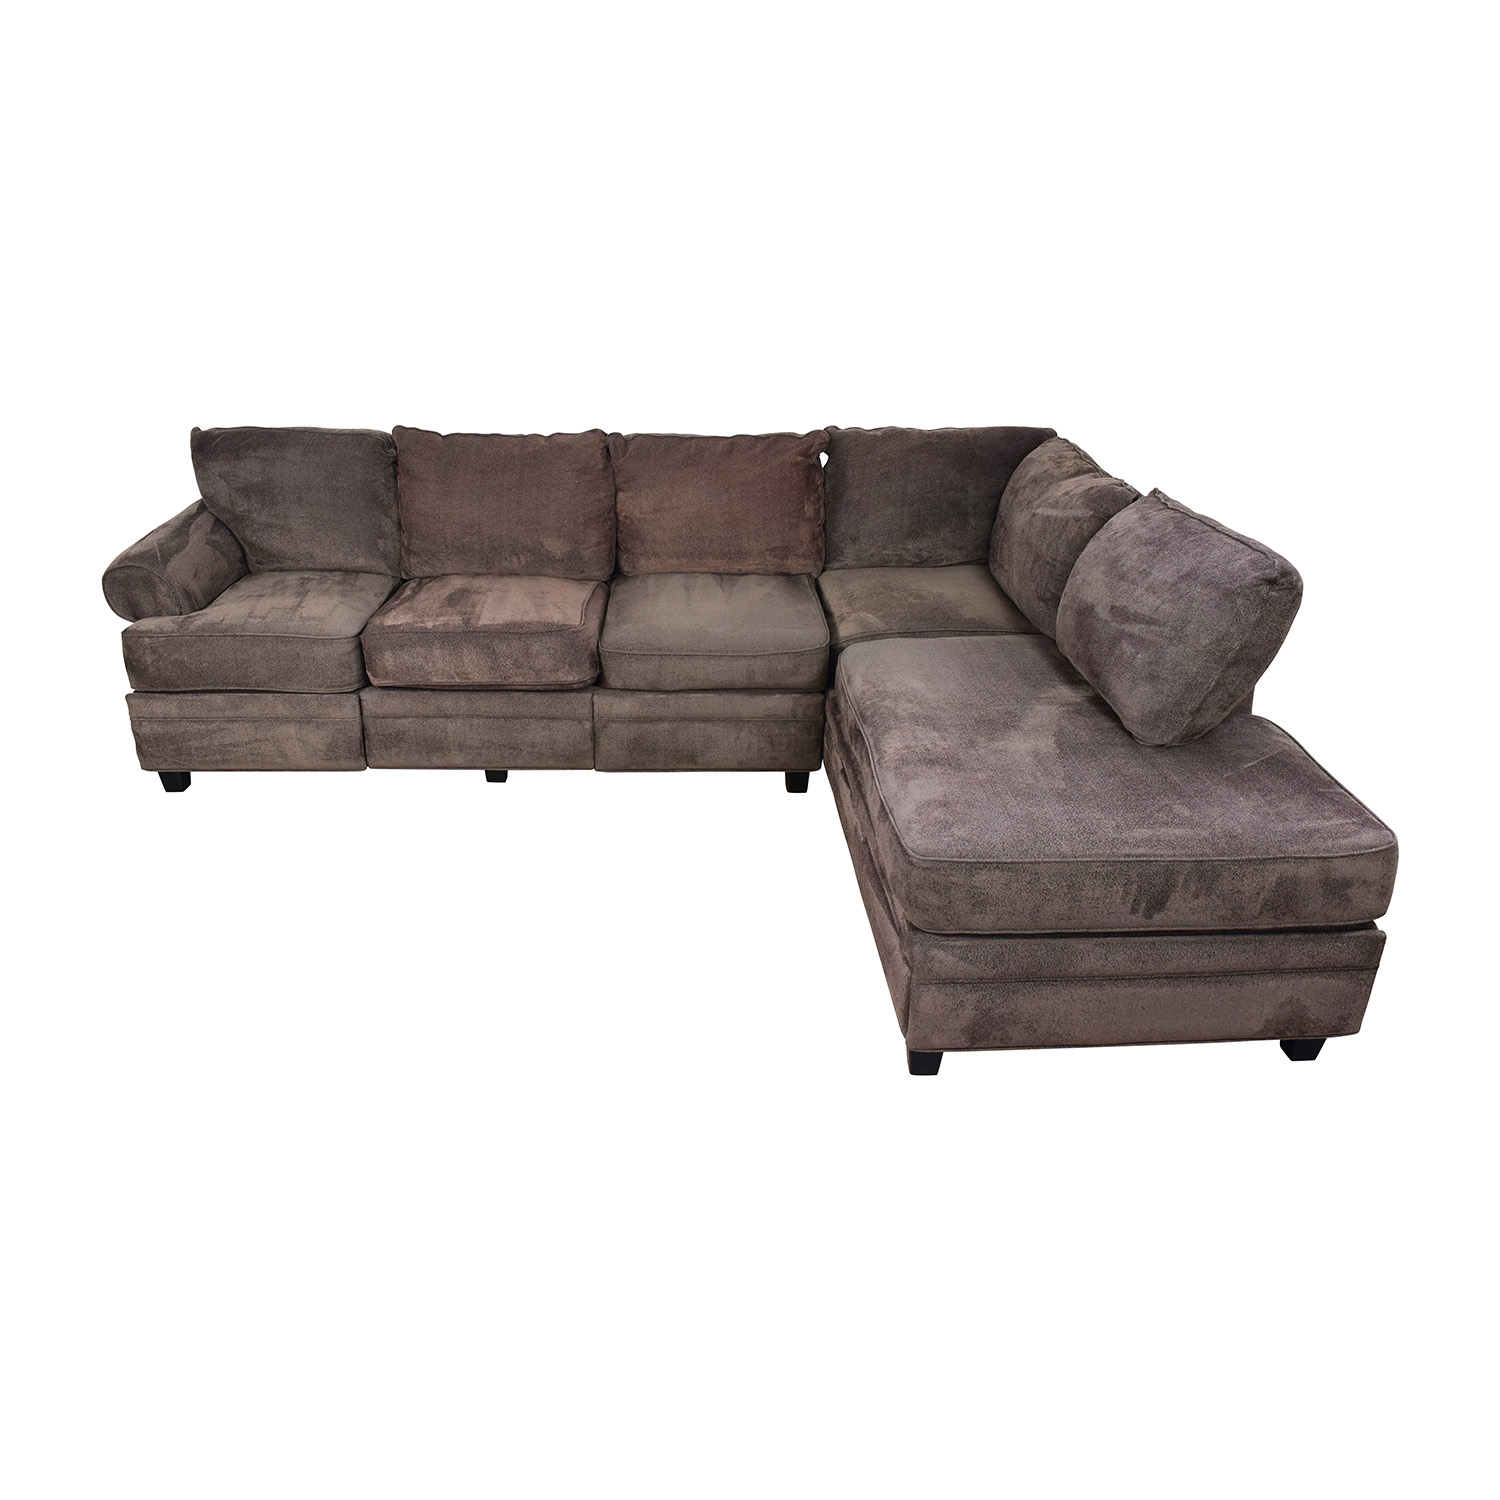 Bob's Furniture Brown Sectional with Storage sale